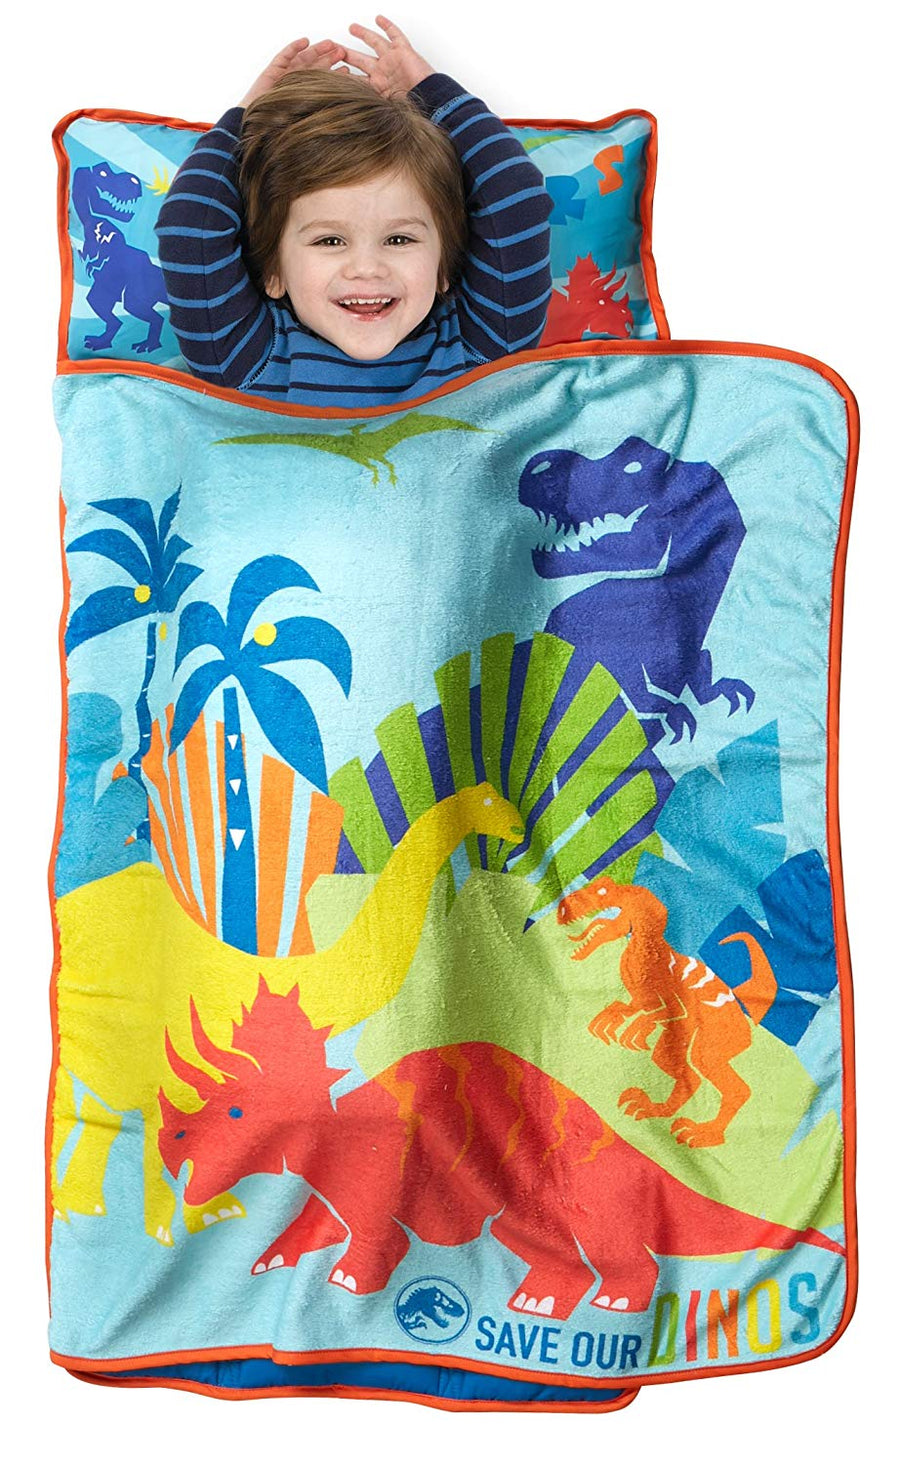 Jurassic World Save Our Dinos Kids Nap Mat - Includes Pillow & Fleece Blanket, Multicolor